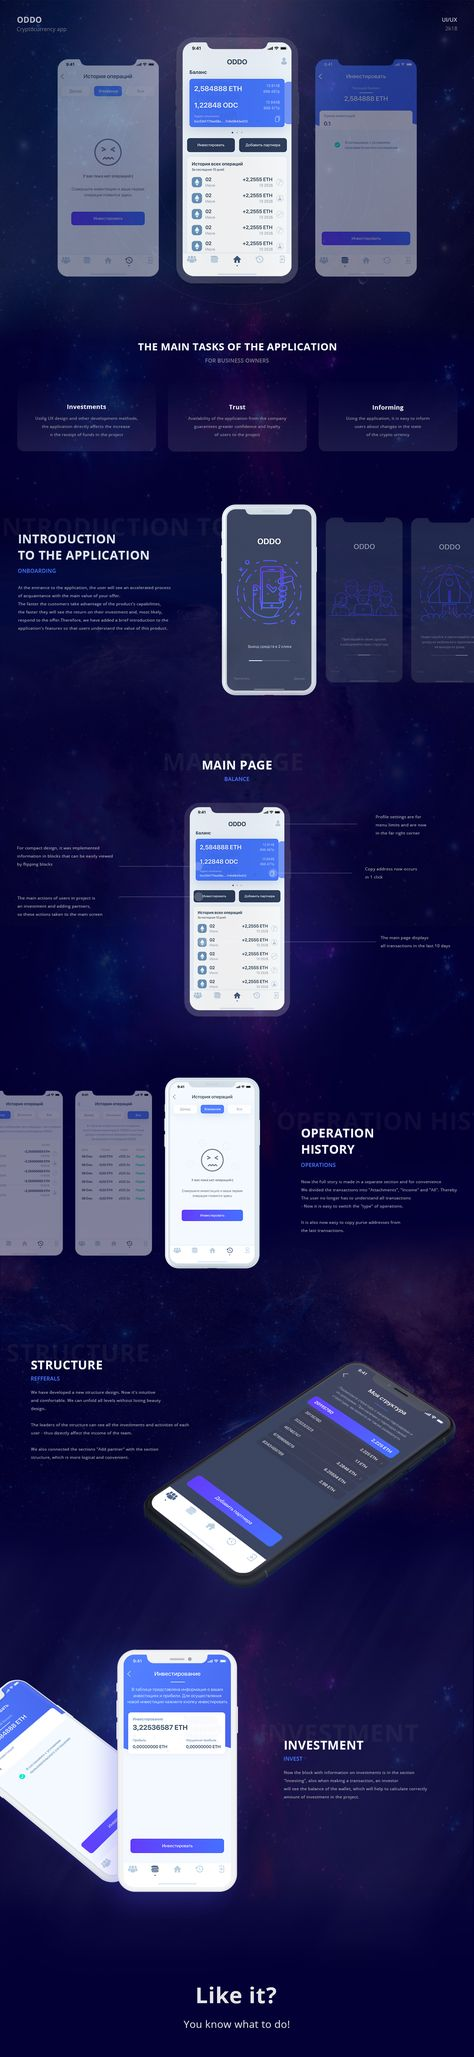 Cryptocurrency - IOS/Android UI/UX